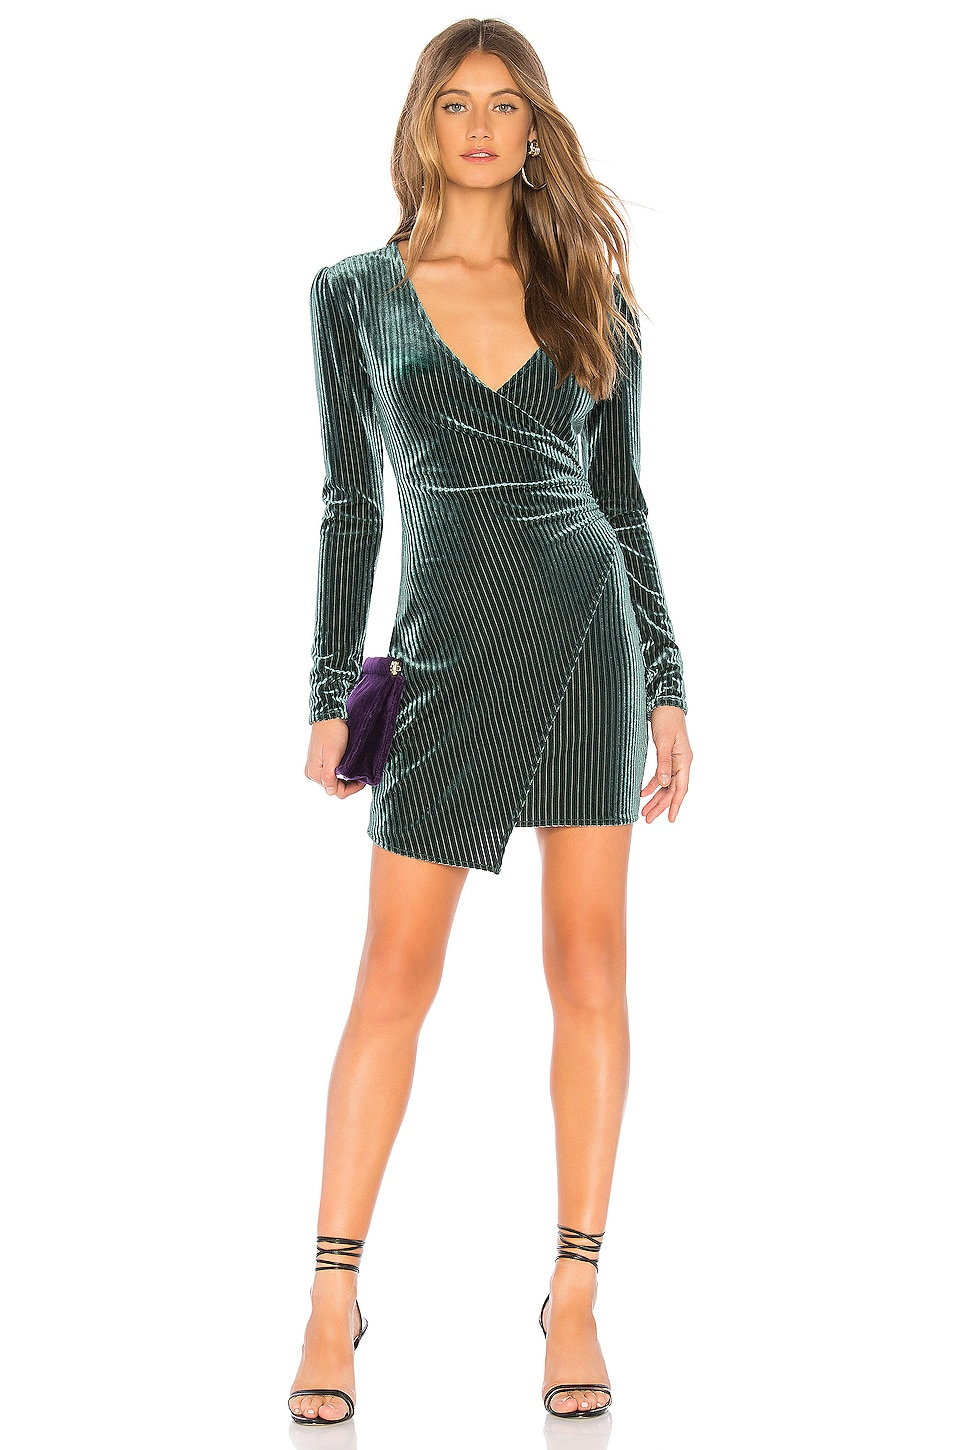 Privacy Please Hayden Mini Dress in Moss Green